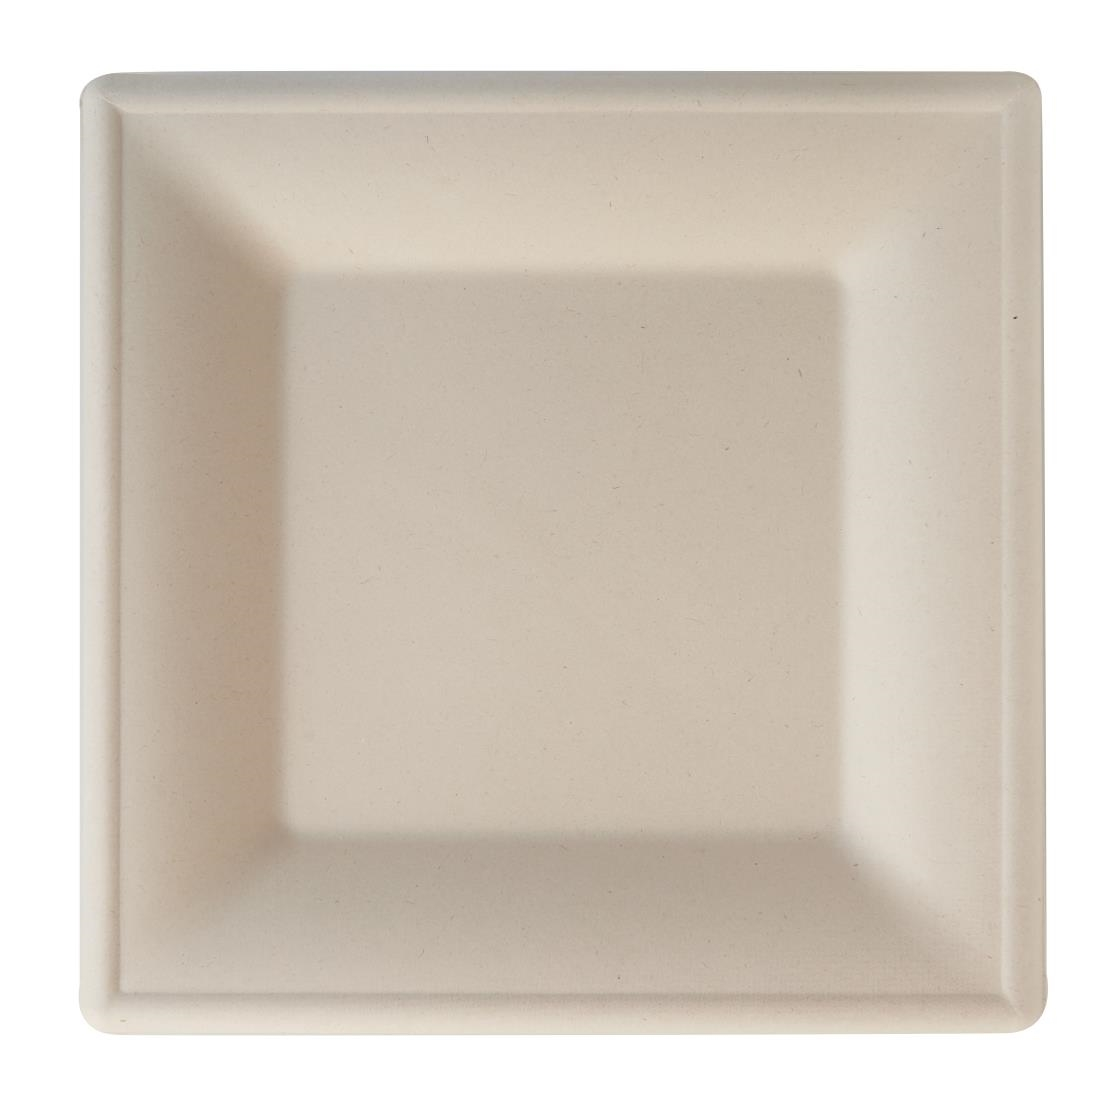 Image of eGreen Eco-Fibre Compostable Wheat Square Plates 260mm (Pack of 500) Pack of 500